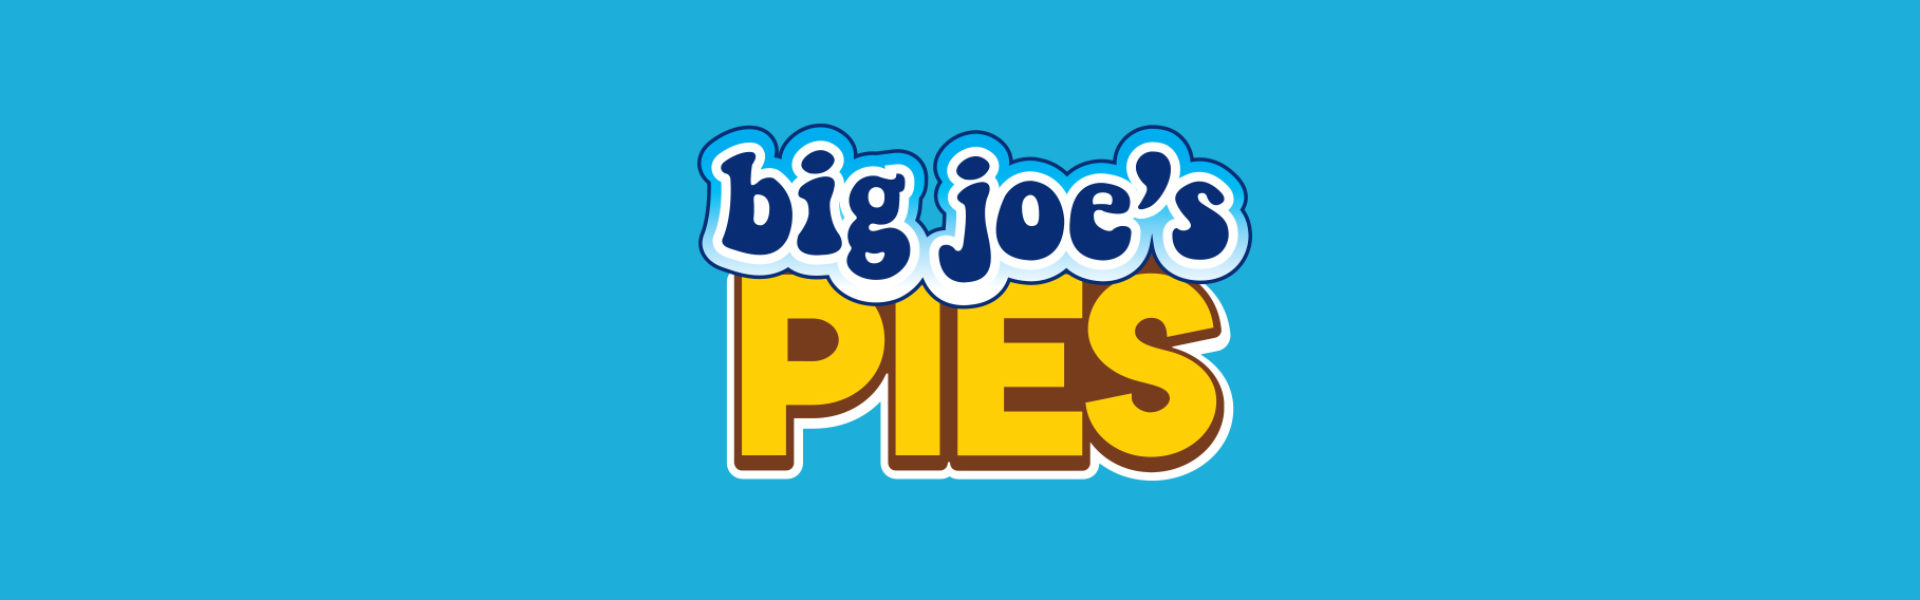 Big Joe's PIES